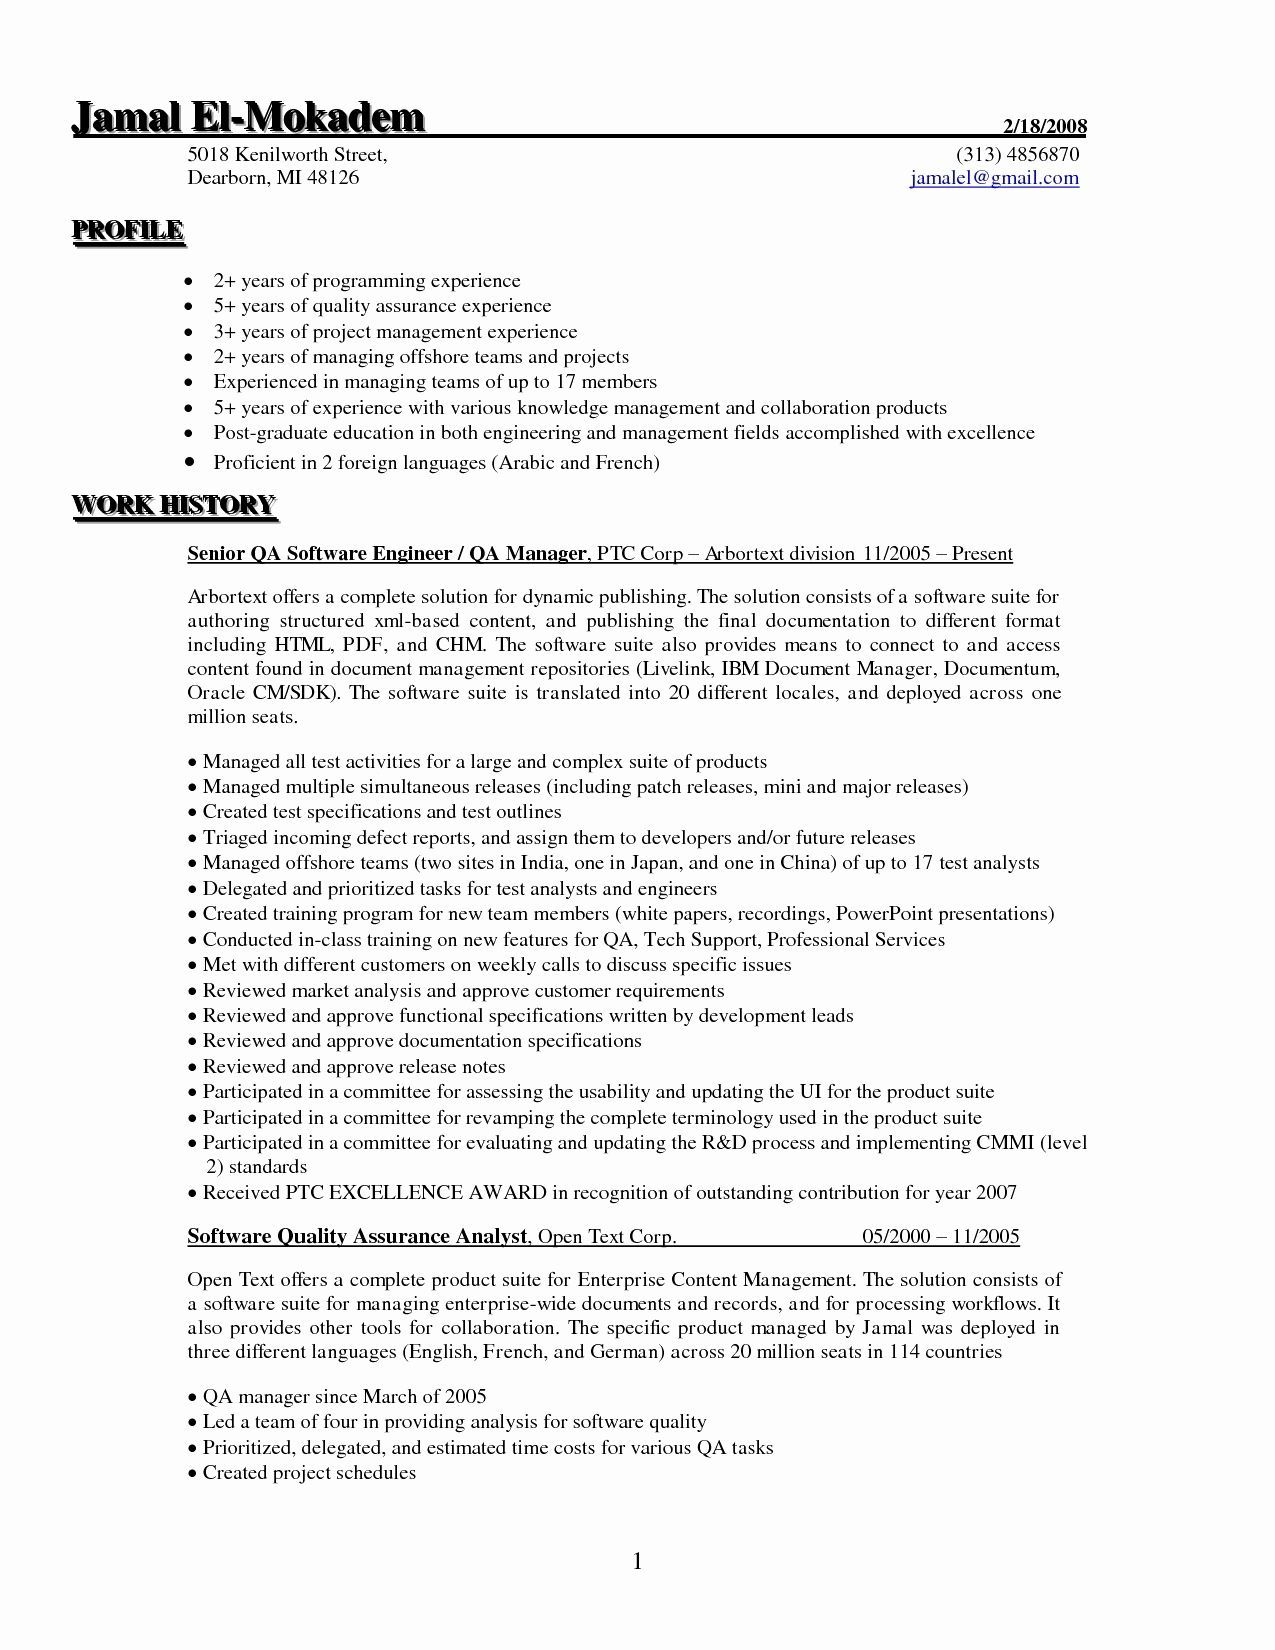 5 years testing experience resume format resume format